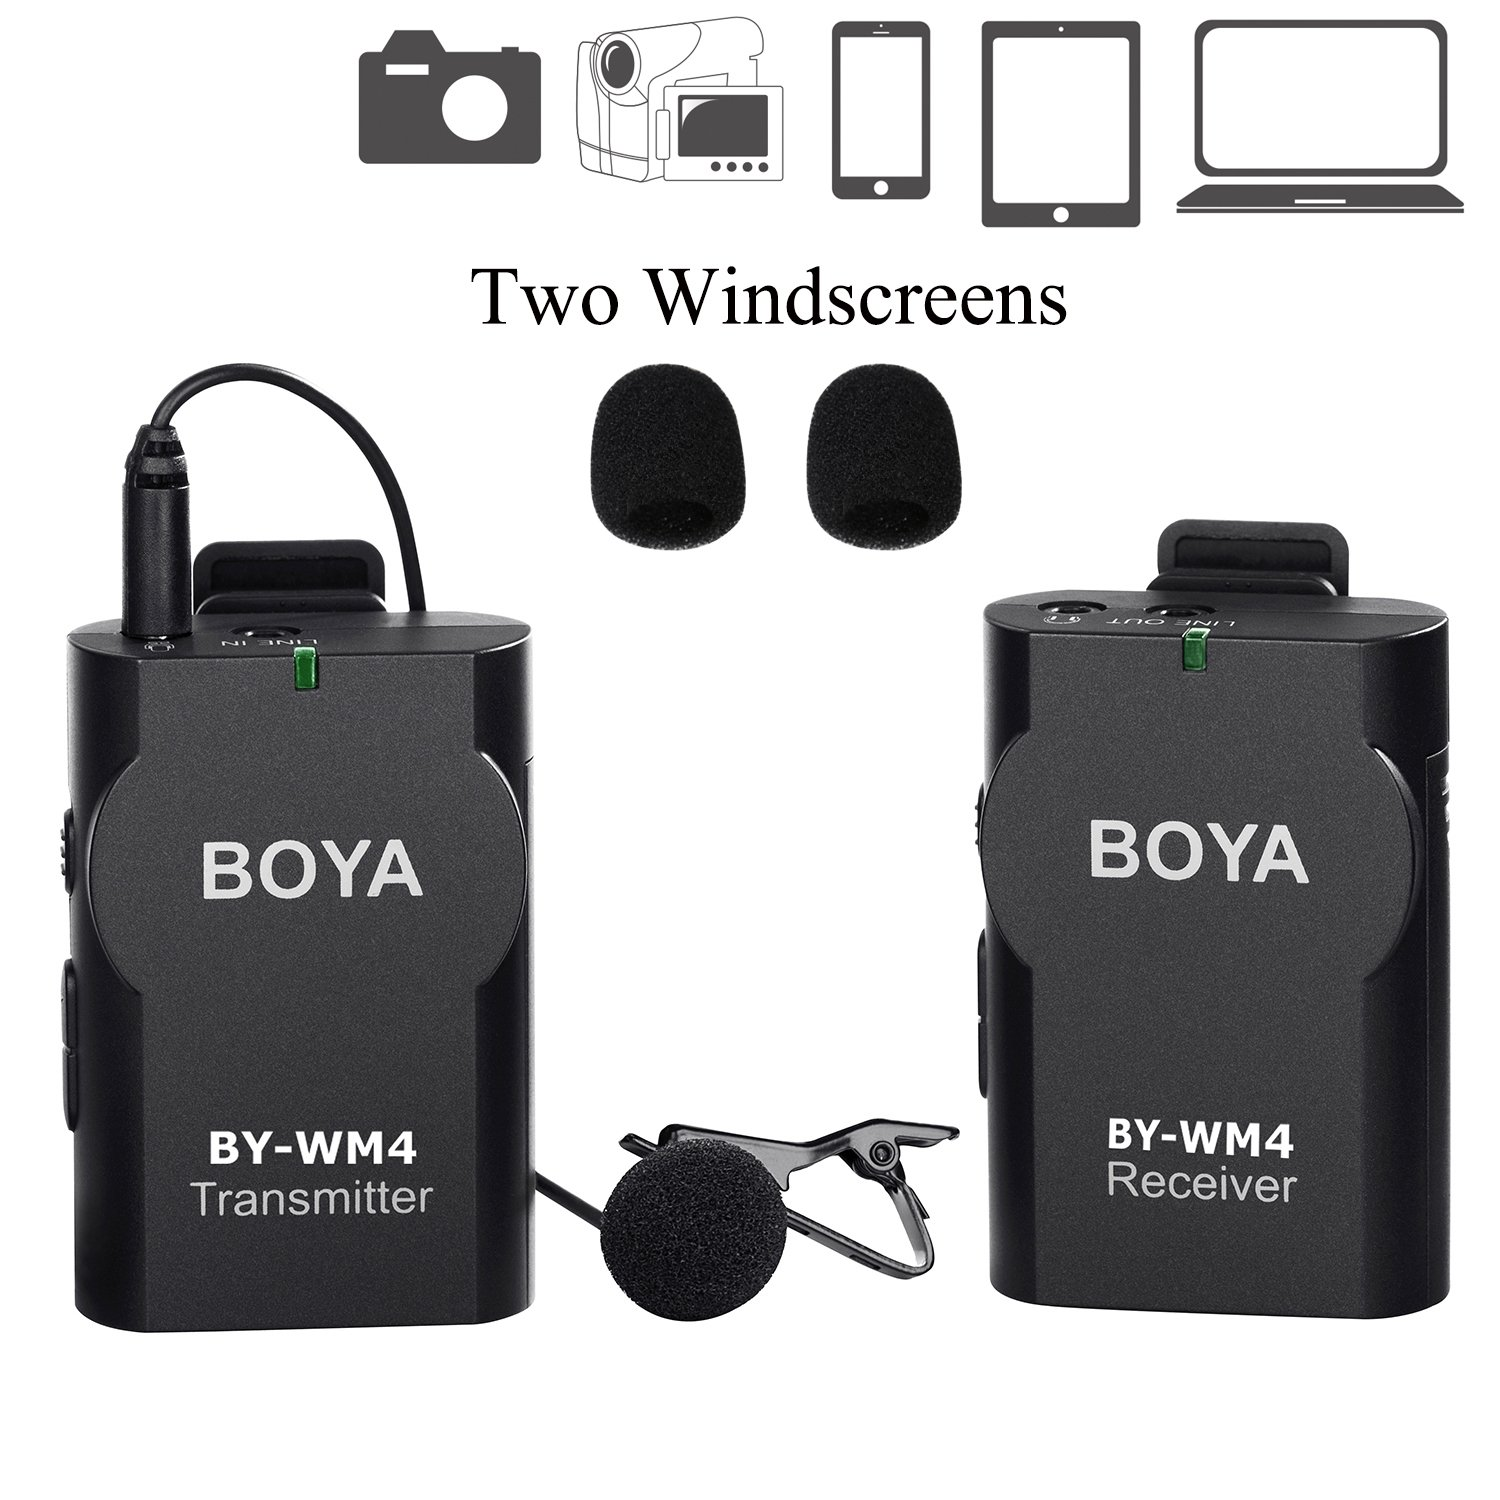 BOYA BY-WM4 Universal Lavalier Wireless Microphone Mic with Real-time Monitor for IOS iPhone 8 8 plus 7 7 plus 6 6s Smartphone iPad Tablet DSLR Amalen.inc